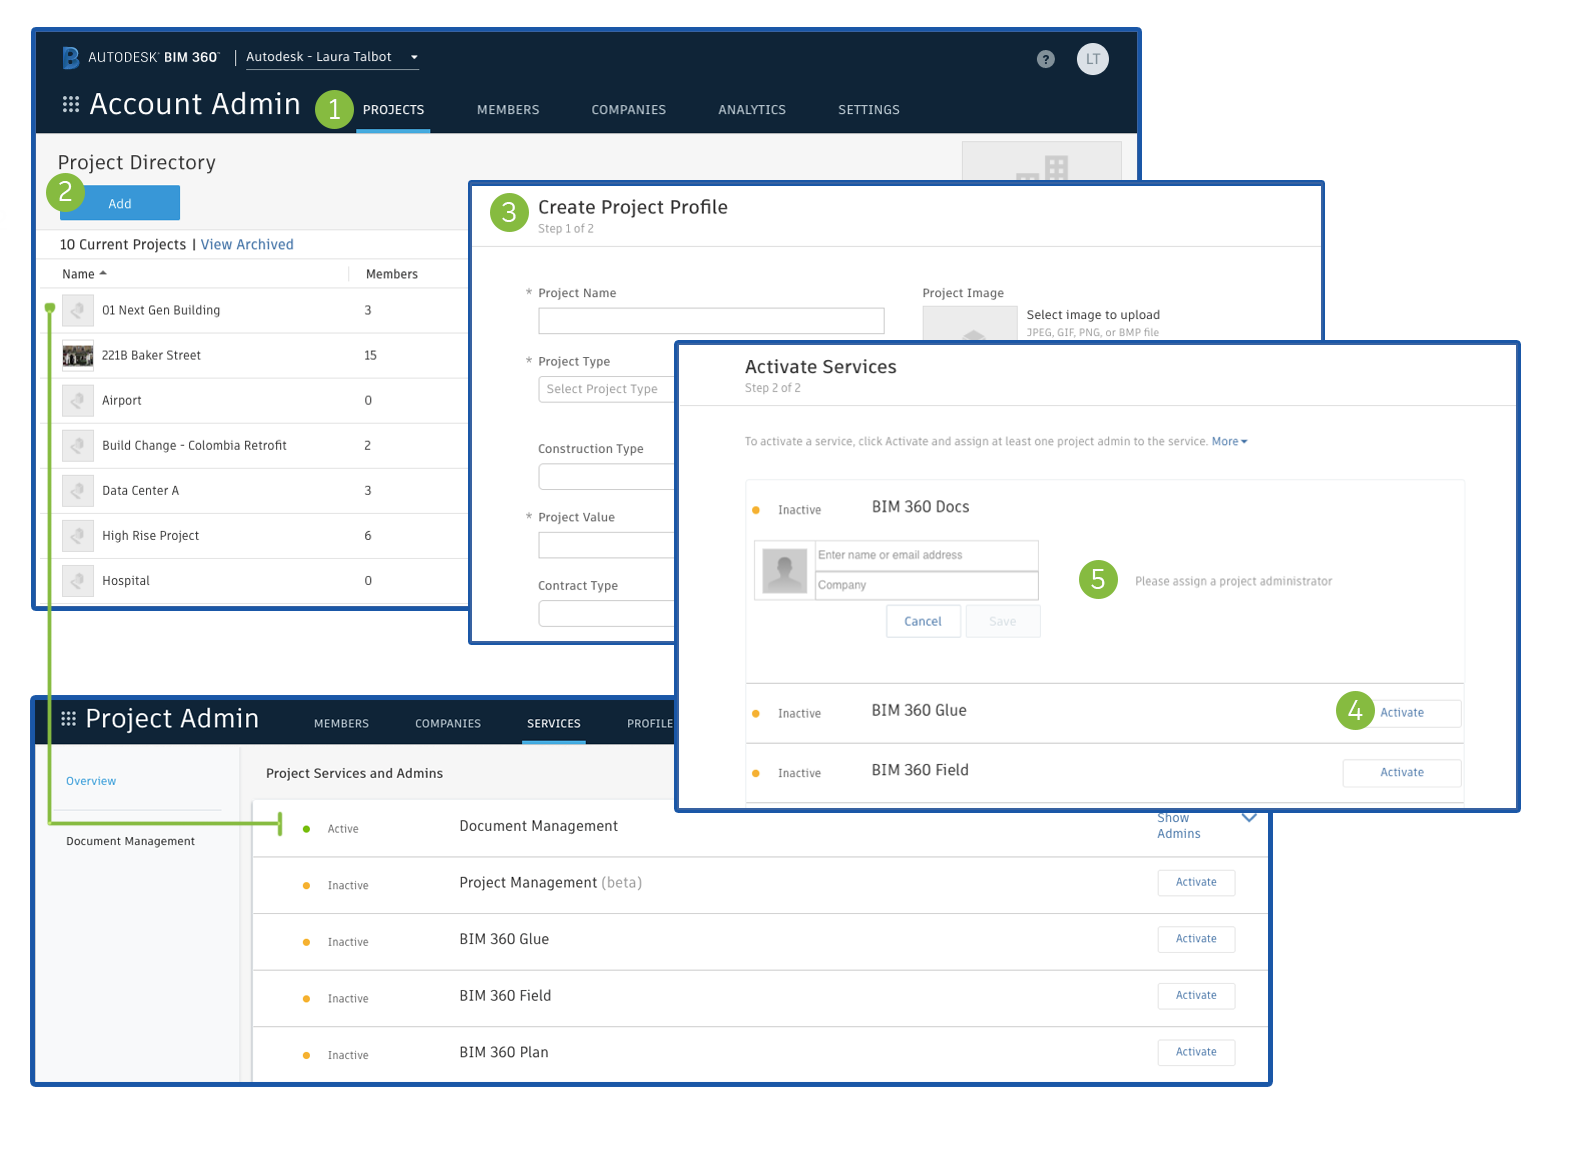 Getting Started with BIM 360 Project Admin